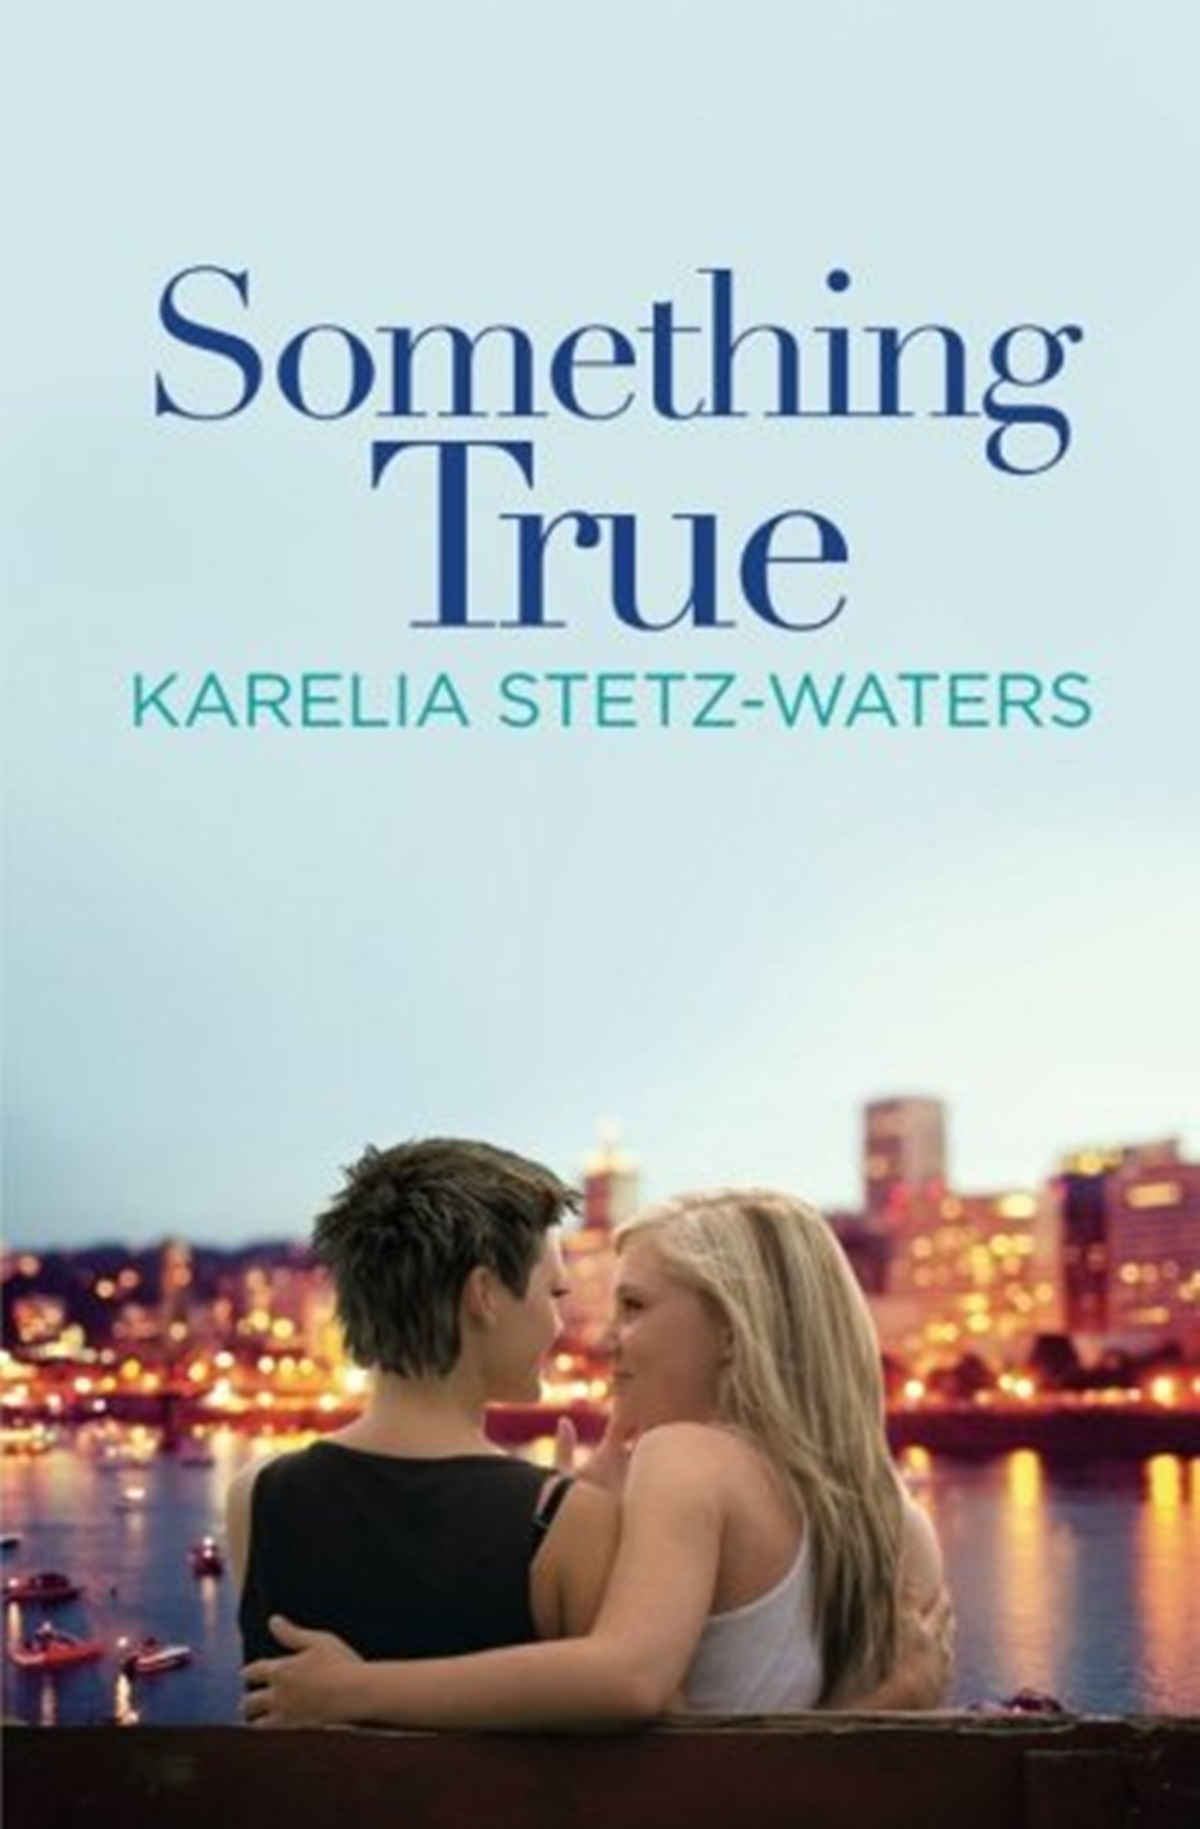 Coffee Shop Romance Novels, cover of Something True by Karelia Stetz-Waters, books